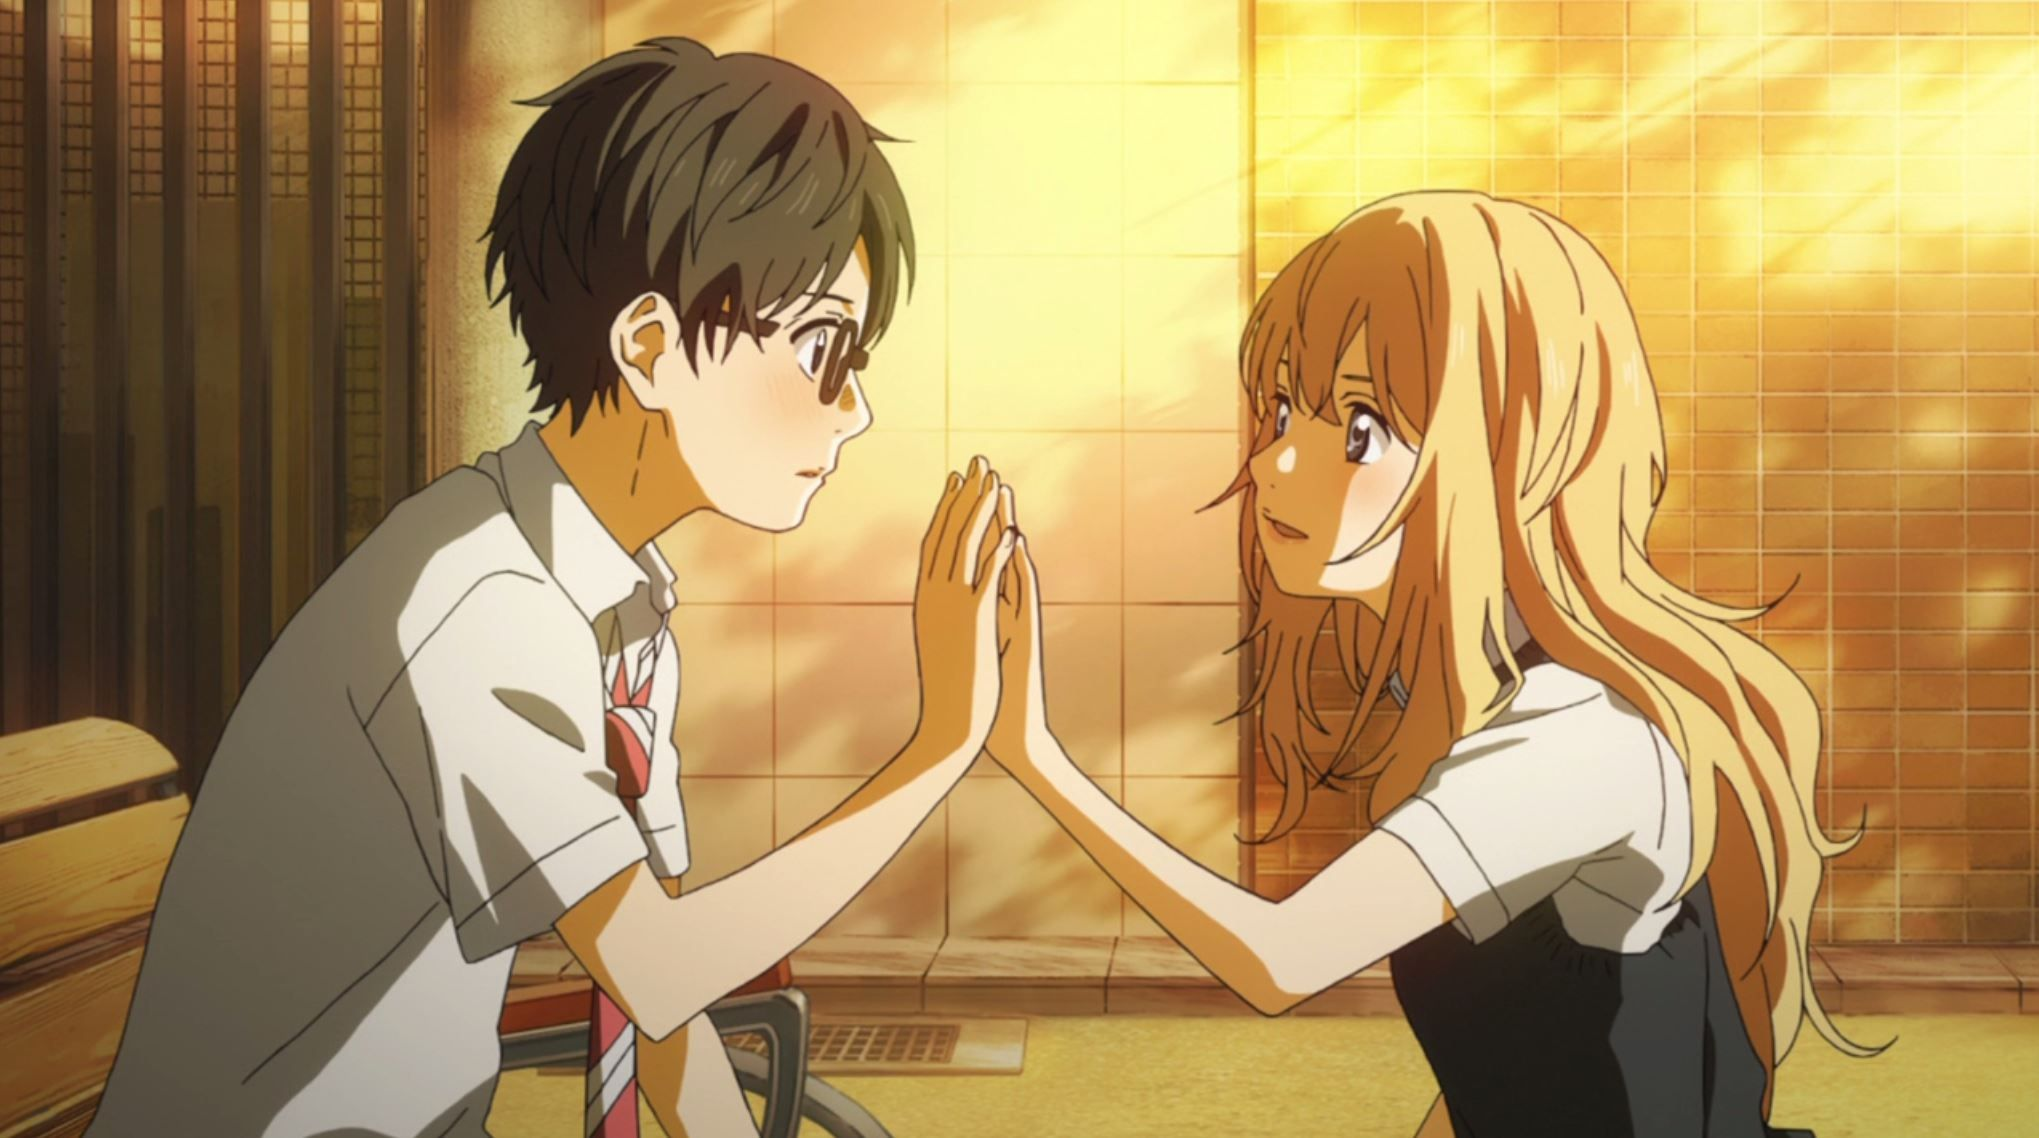 Top 25 Best Romance Anime of All Time